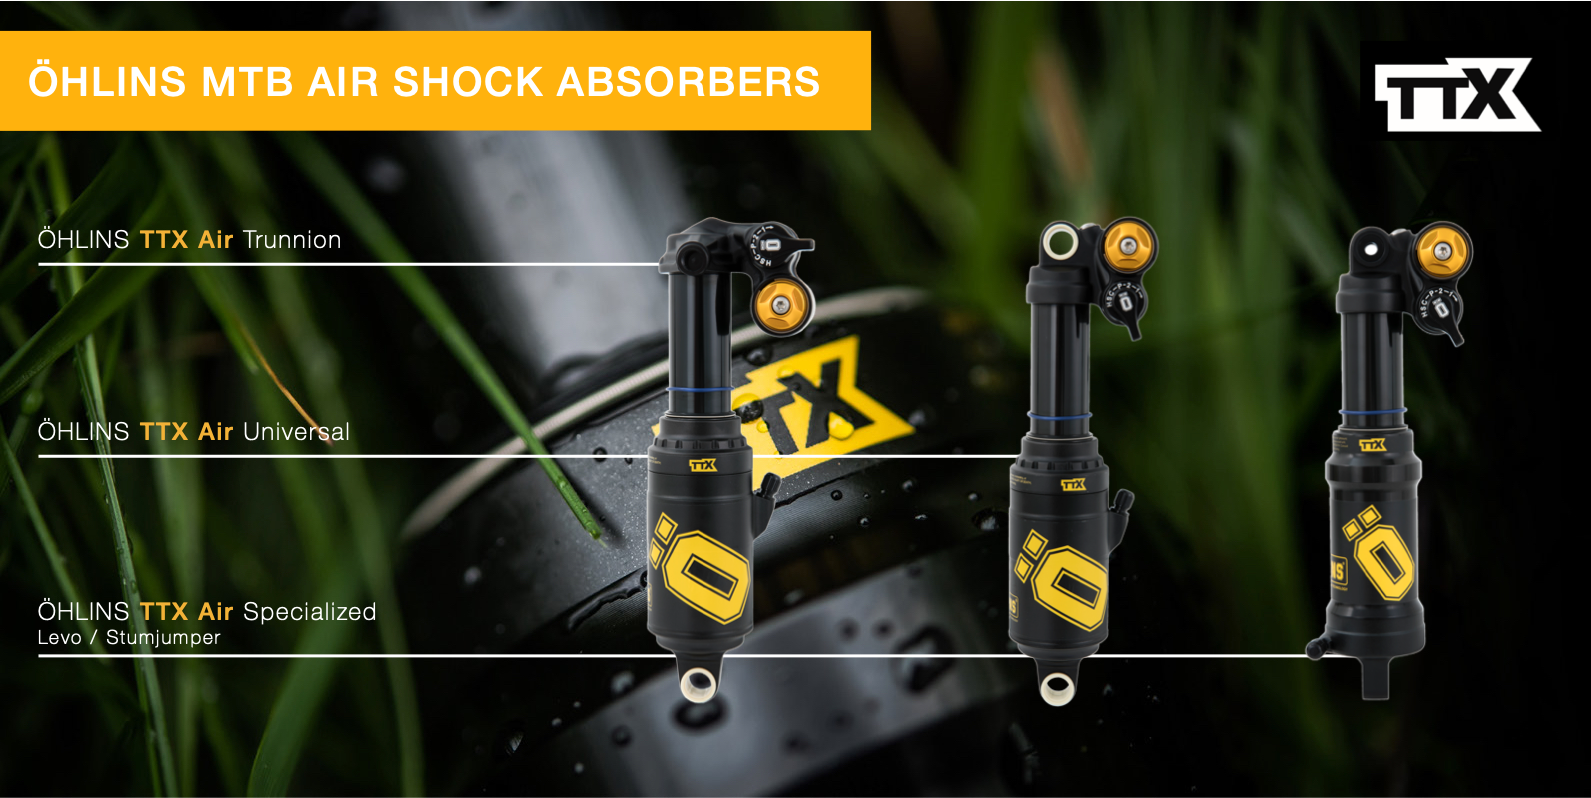 Ohlins TTX Air product range